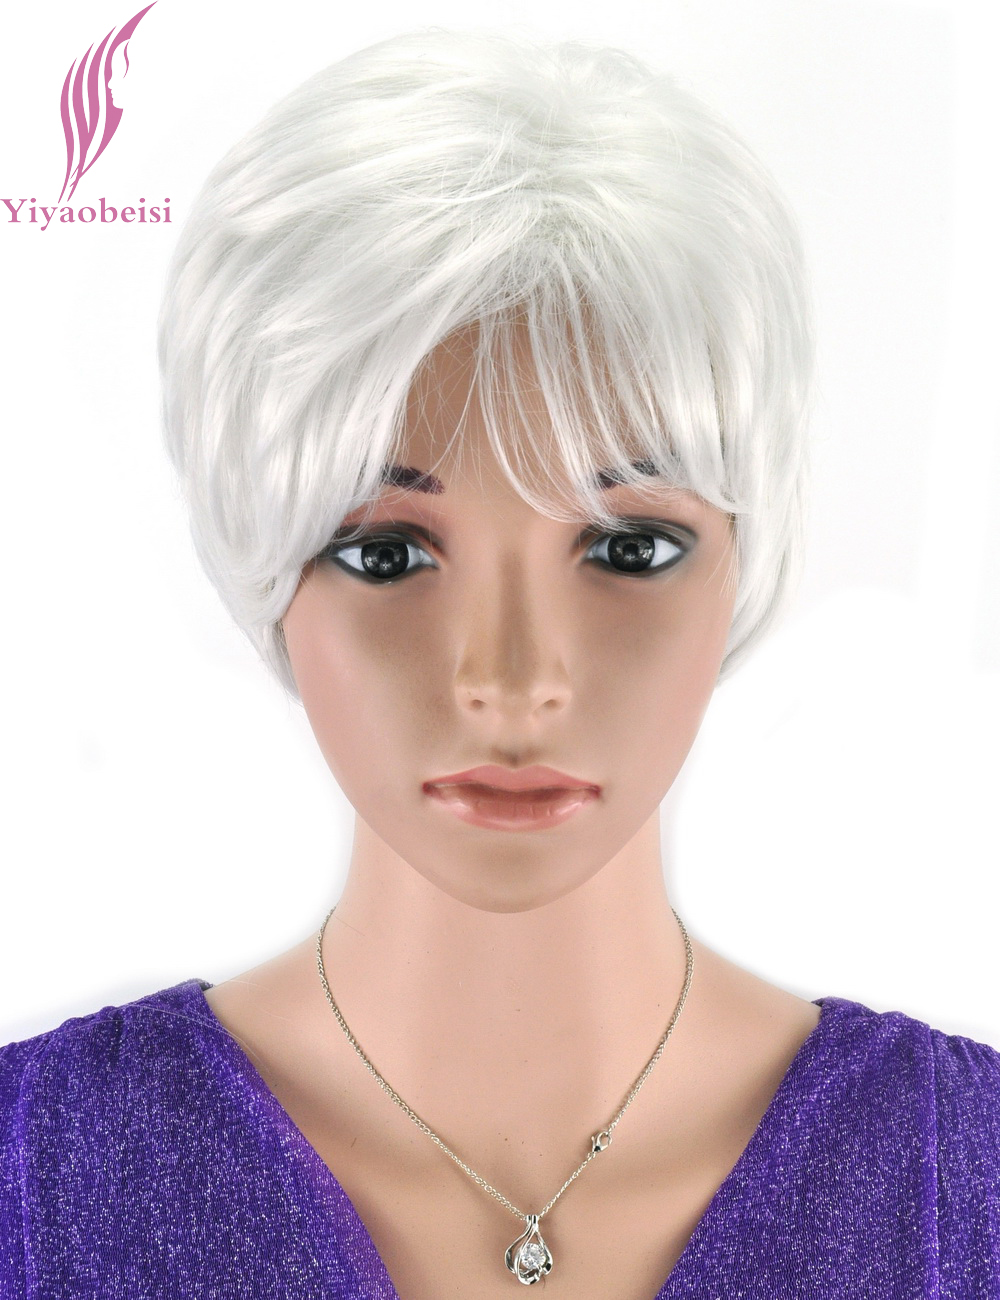 Yiyaobess 6inch Puffy Straight Short White Wig For Older Women Heat Resistant Synthetic African American Hair Wigs With Bangs